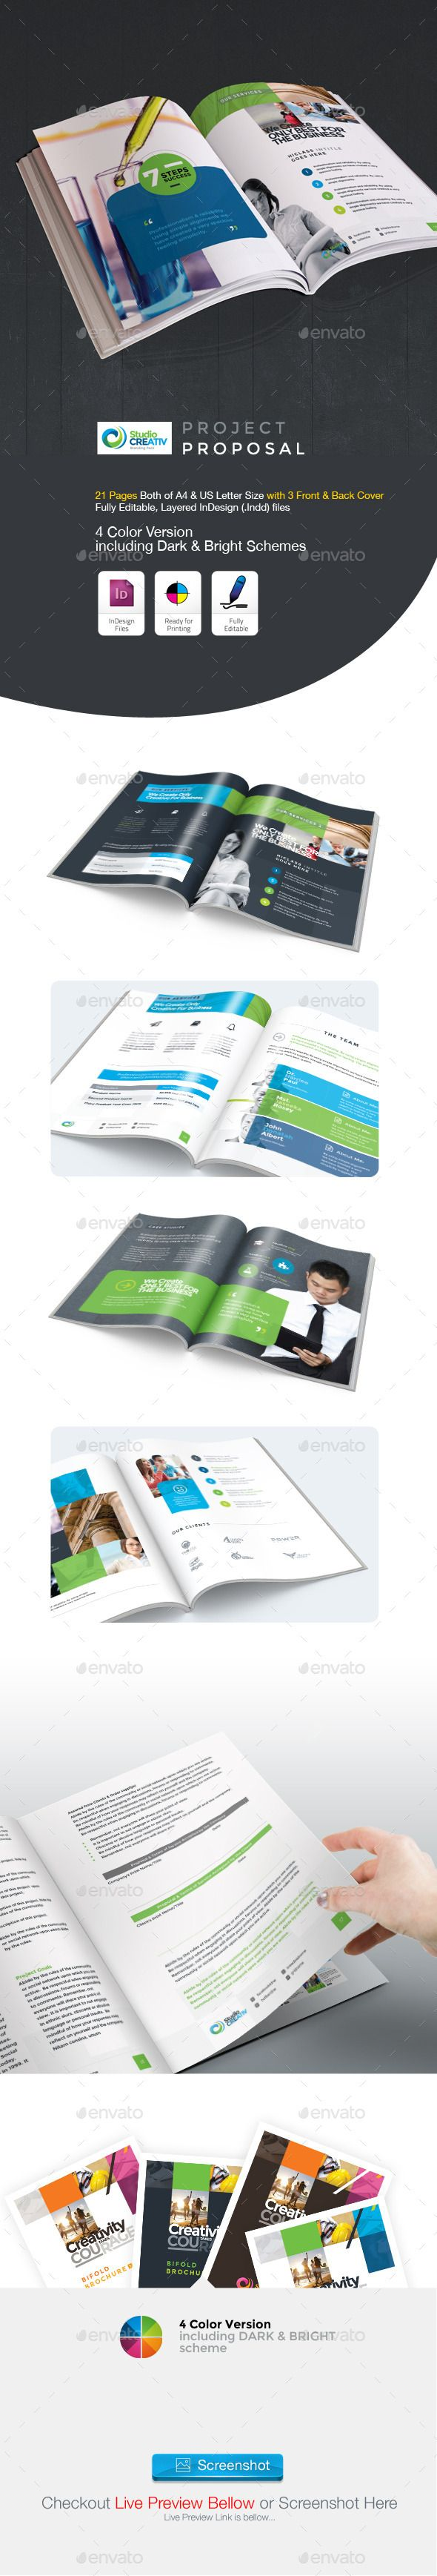 Creative project proposal template design download http creative project proposal template design download httpgraphicriveritemcreative project proposal9563949refksioks saigontimesfo